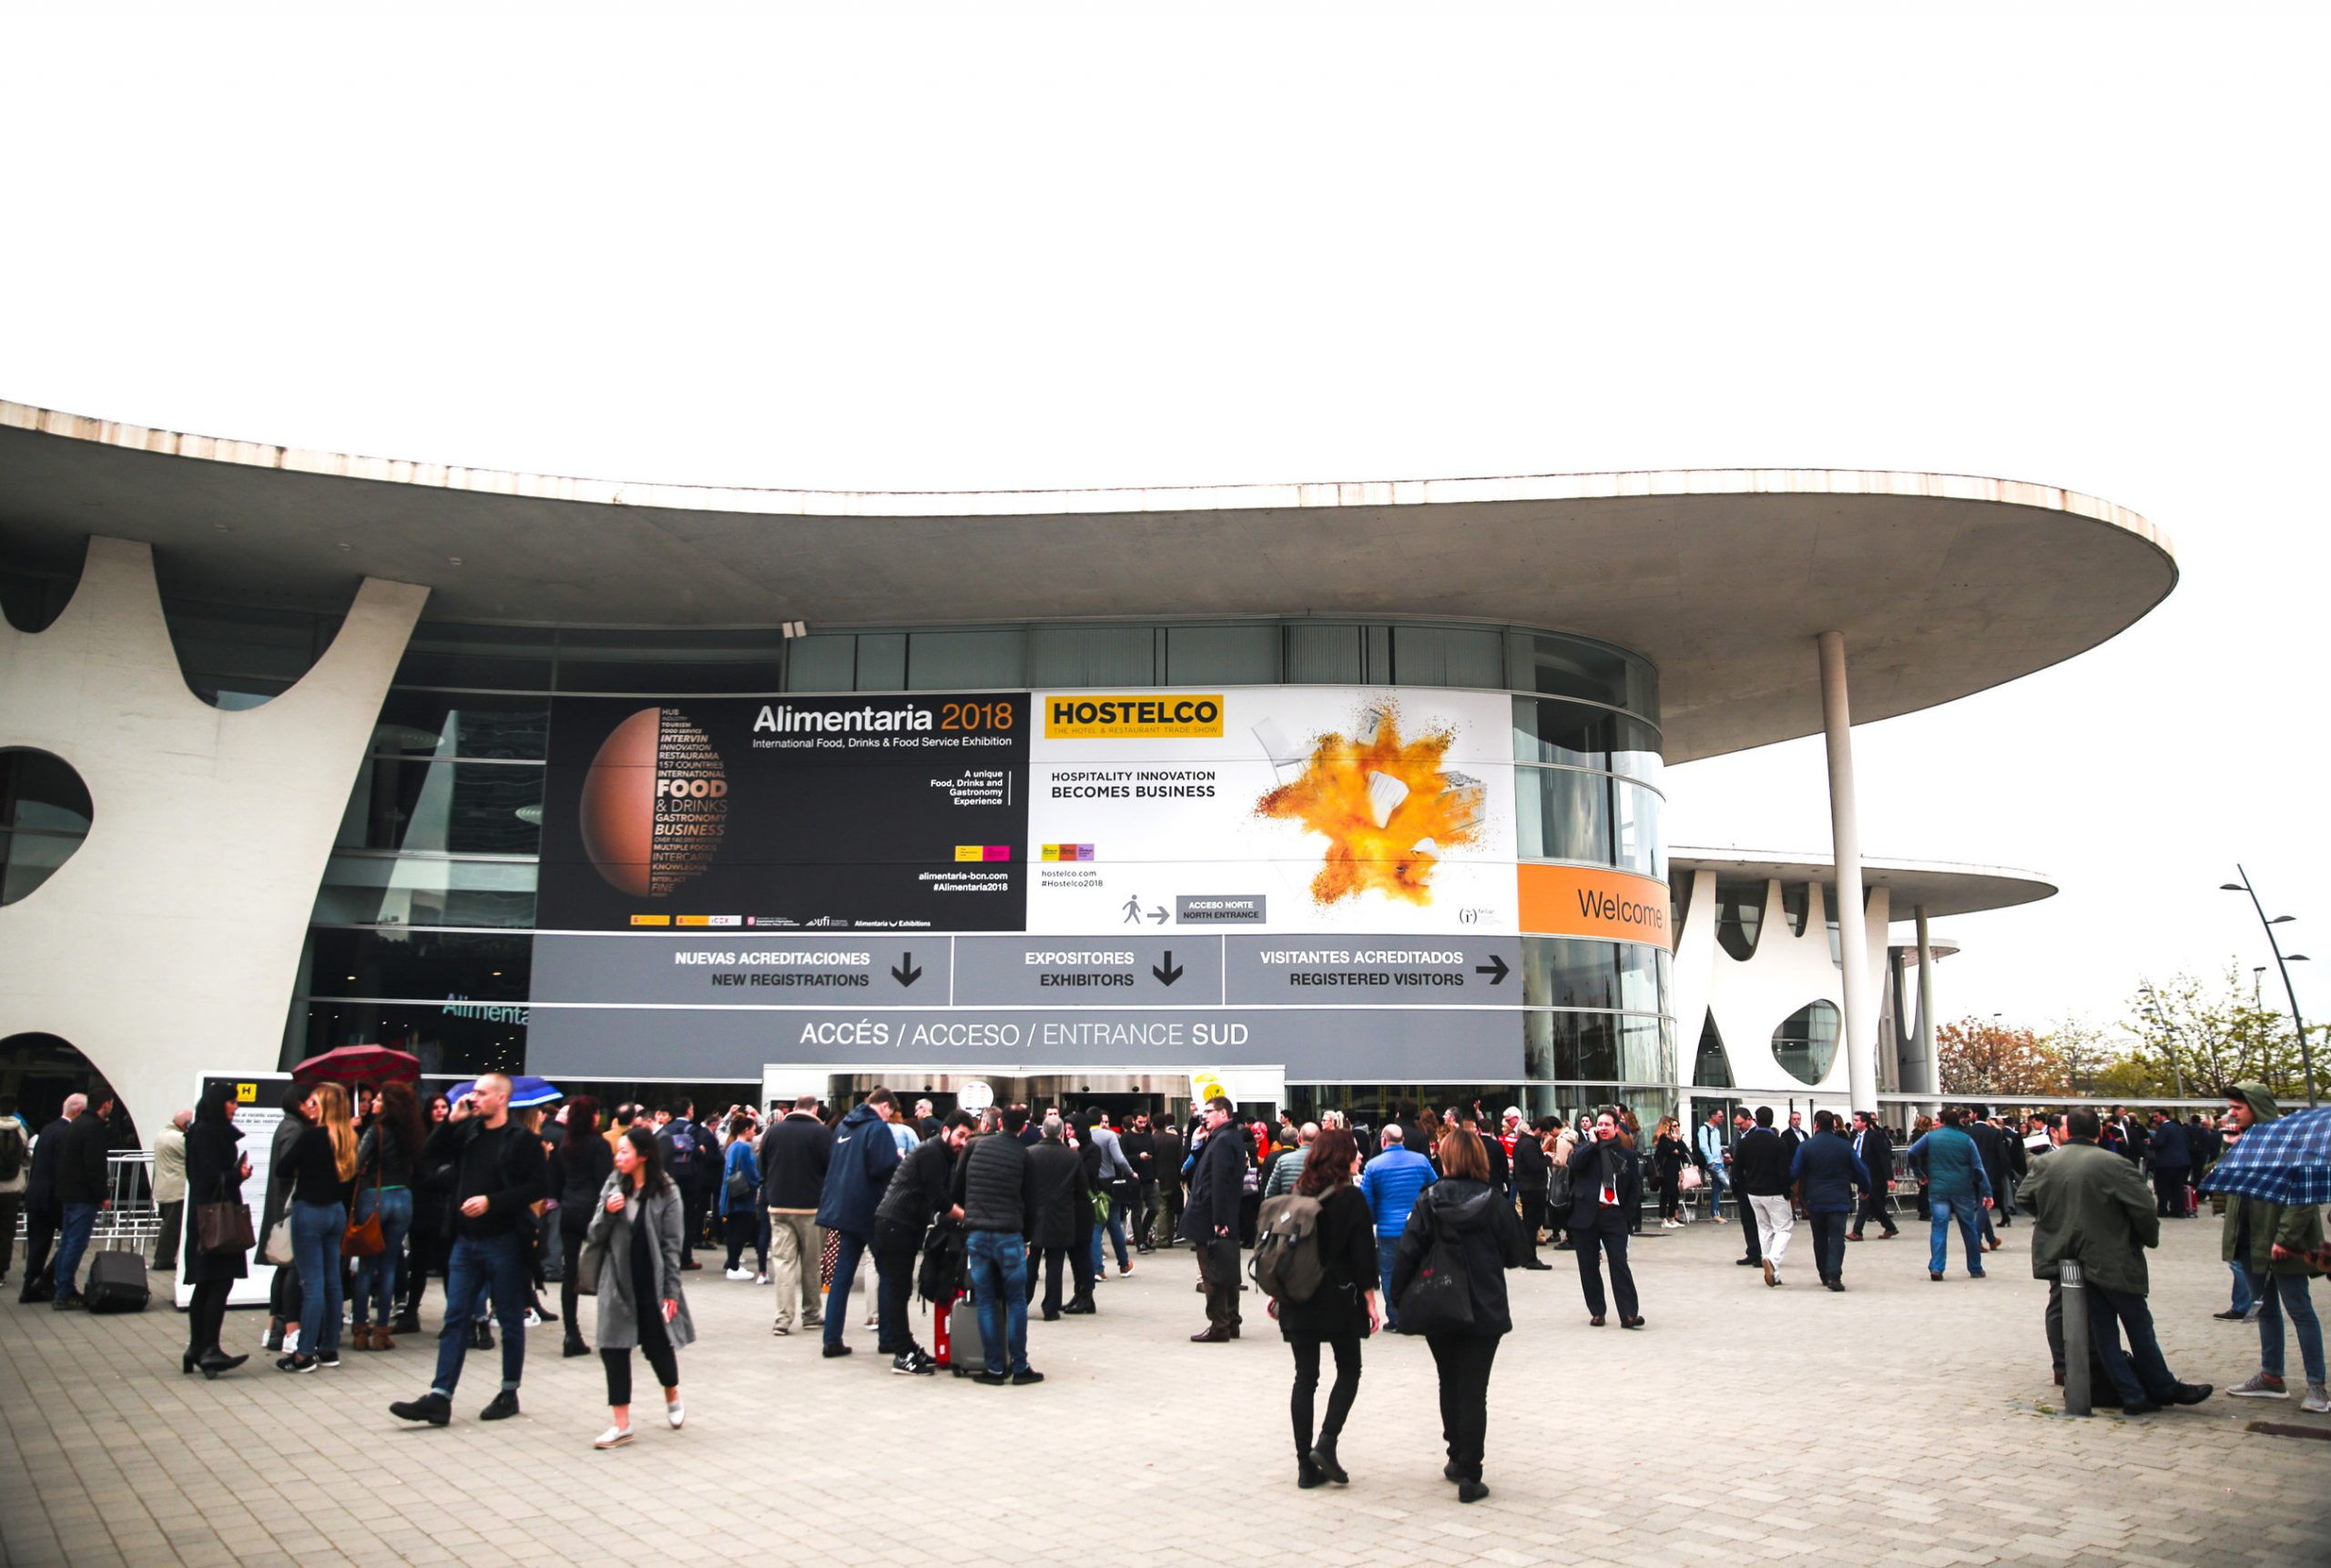 The Alimentaria, one of the most important food, beverage and gastronomy trade fairs worldwide, takes place from April 20 to 23, 2020 in the Fira de Barcelona